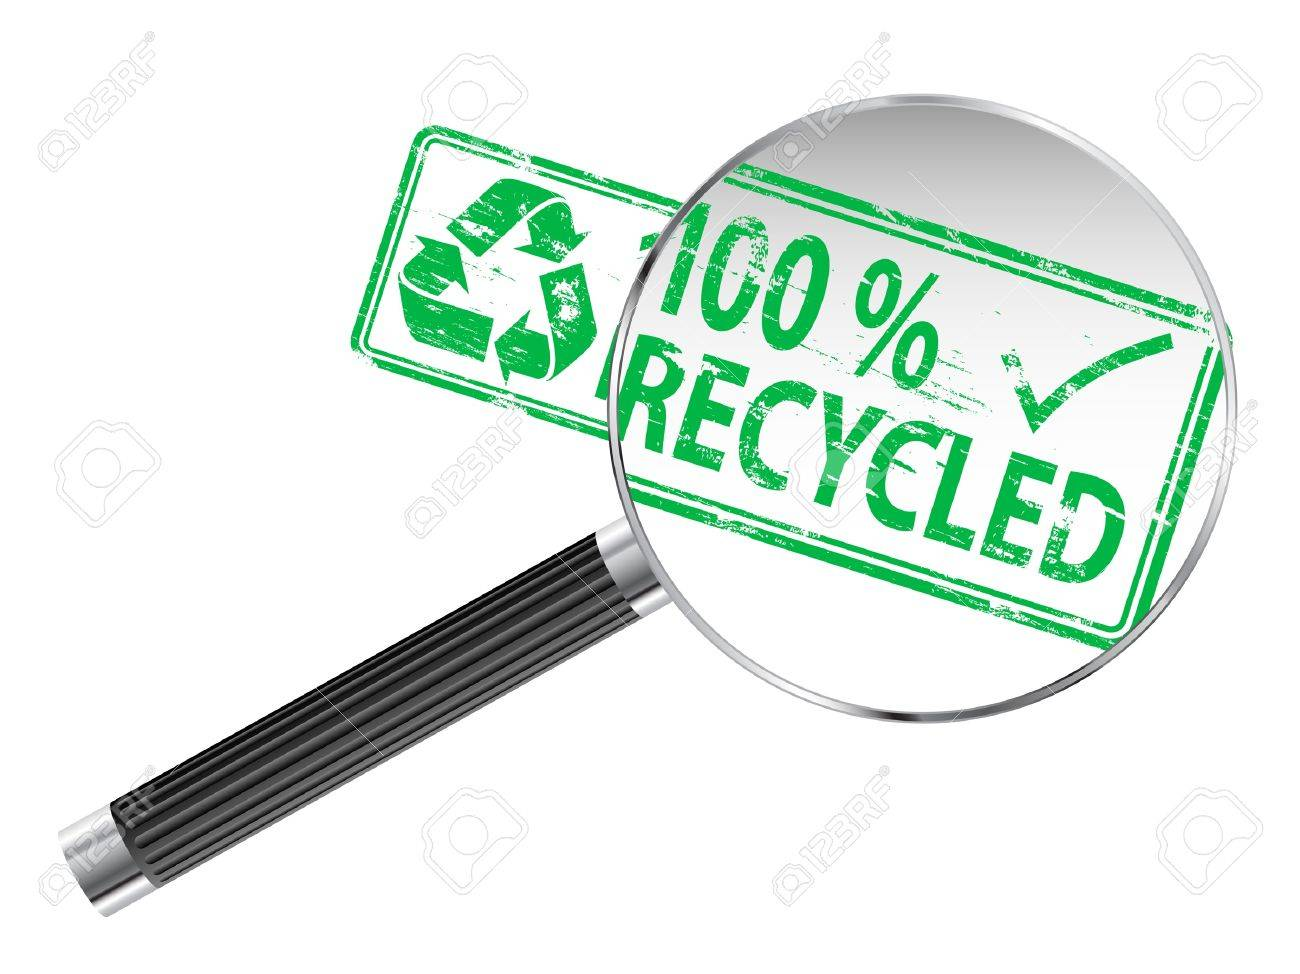 100 Percent Recycled rubber stamp under a magnifying glass Stock Vector - 15969854